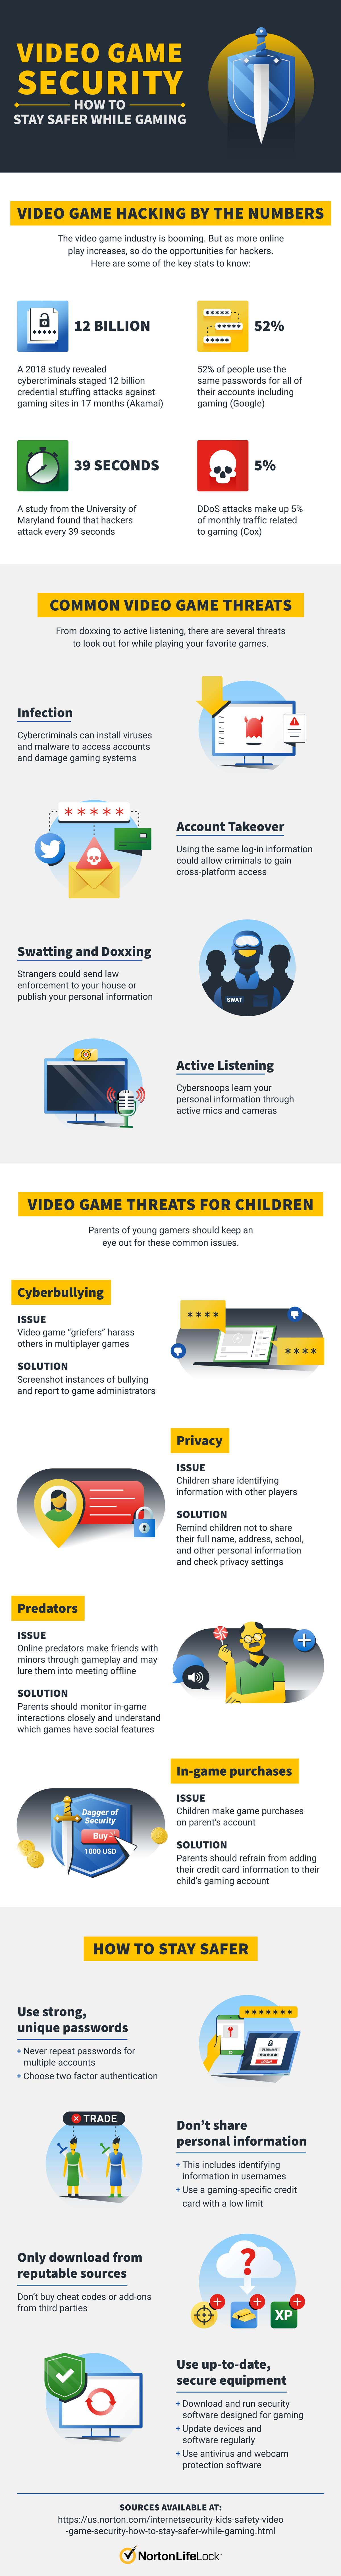 Video Game Security: How To Stay Safer While Gaming